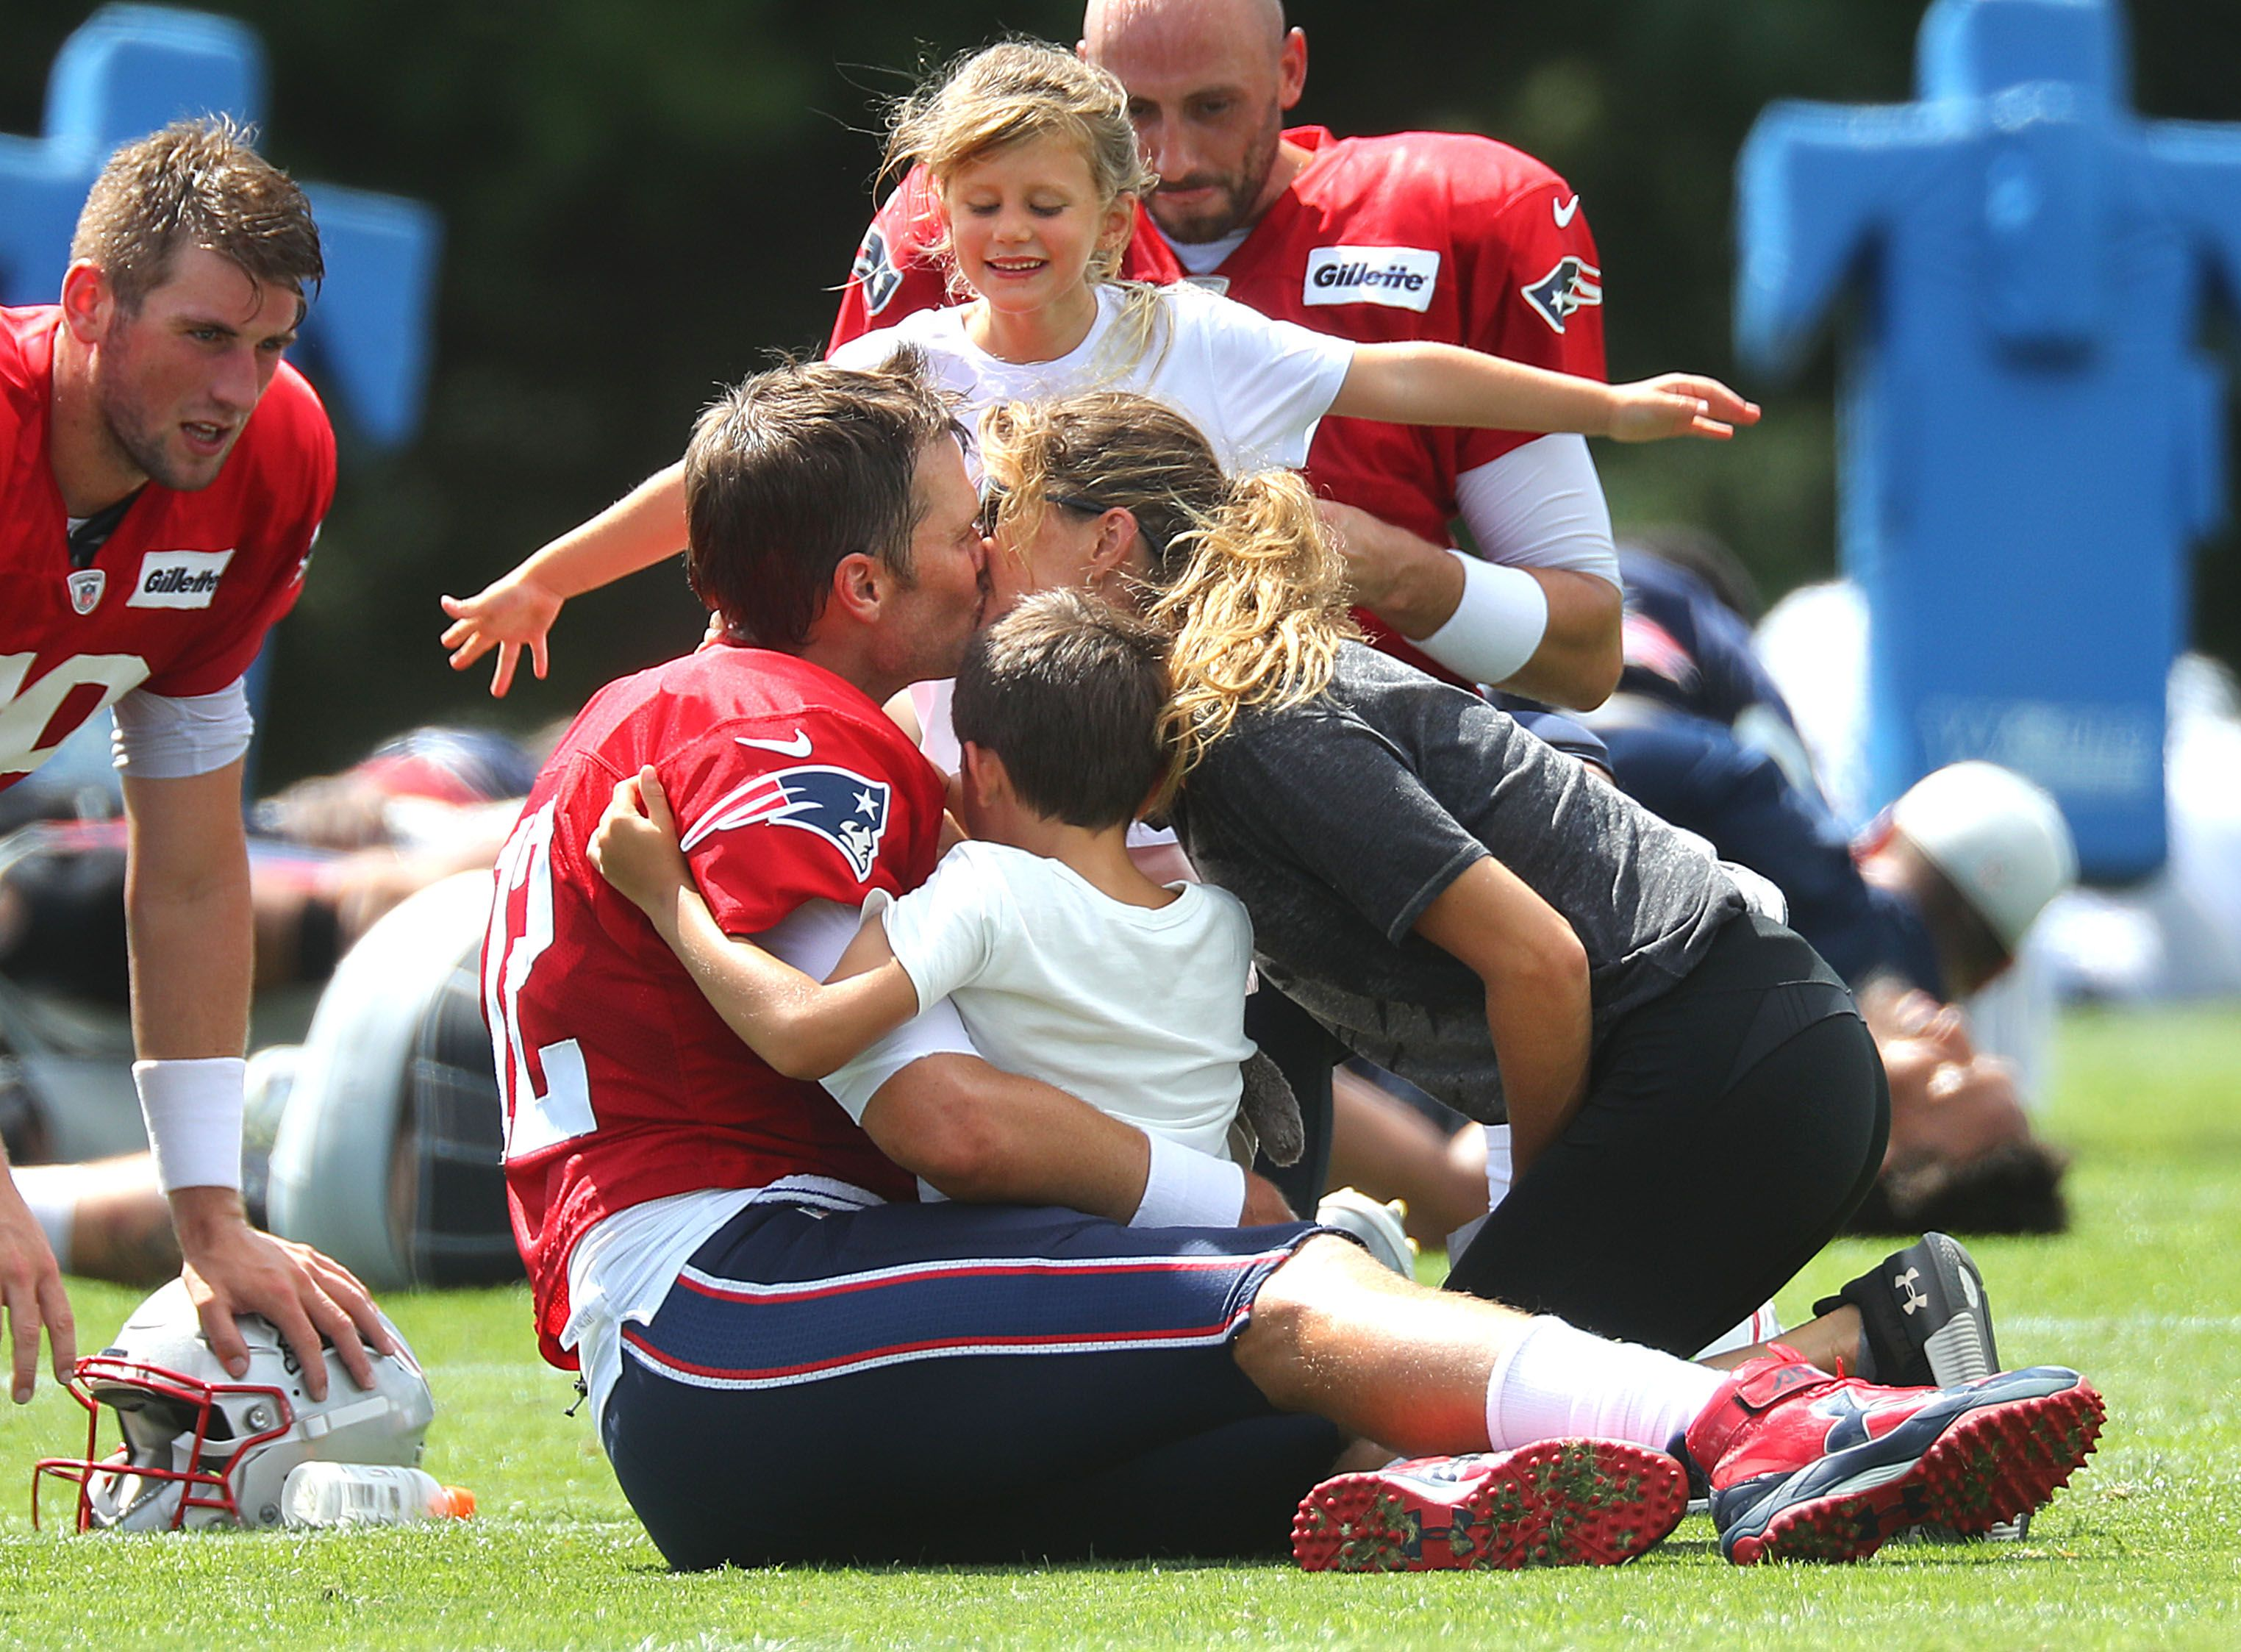 Brady gets a group hug from his daughter Vivian, son Benjamin and his wife Gisele Bundchen following Patriots training camp at the Gillette Stadium practice facility in Foxborough, MA on Aug. 3, 2018. | Source: Getty Images